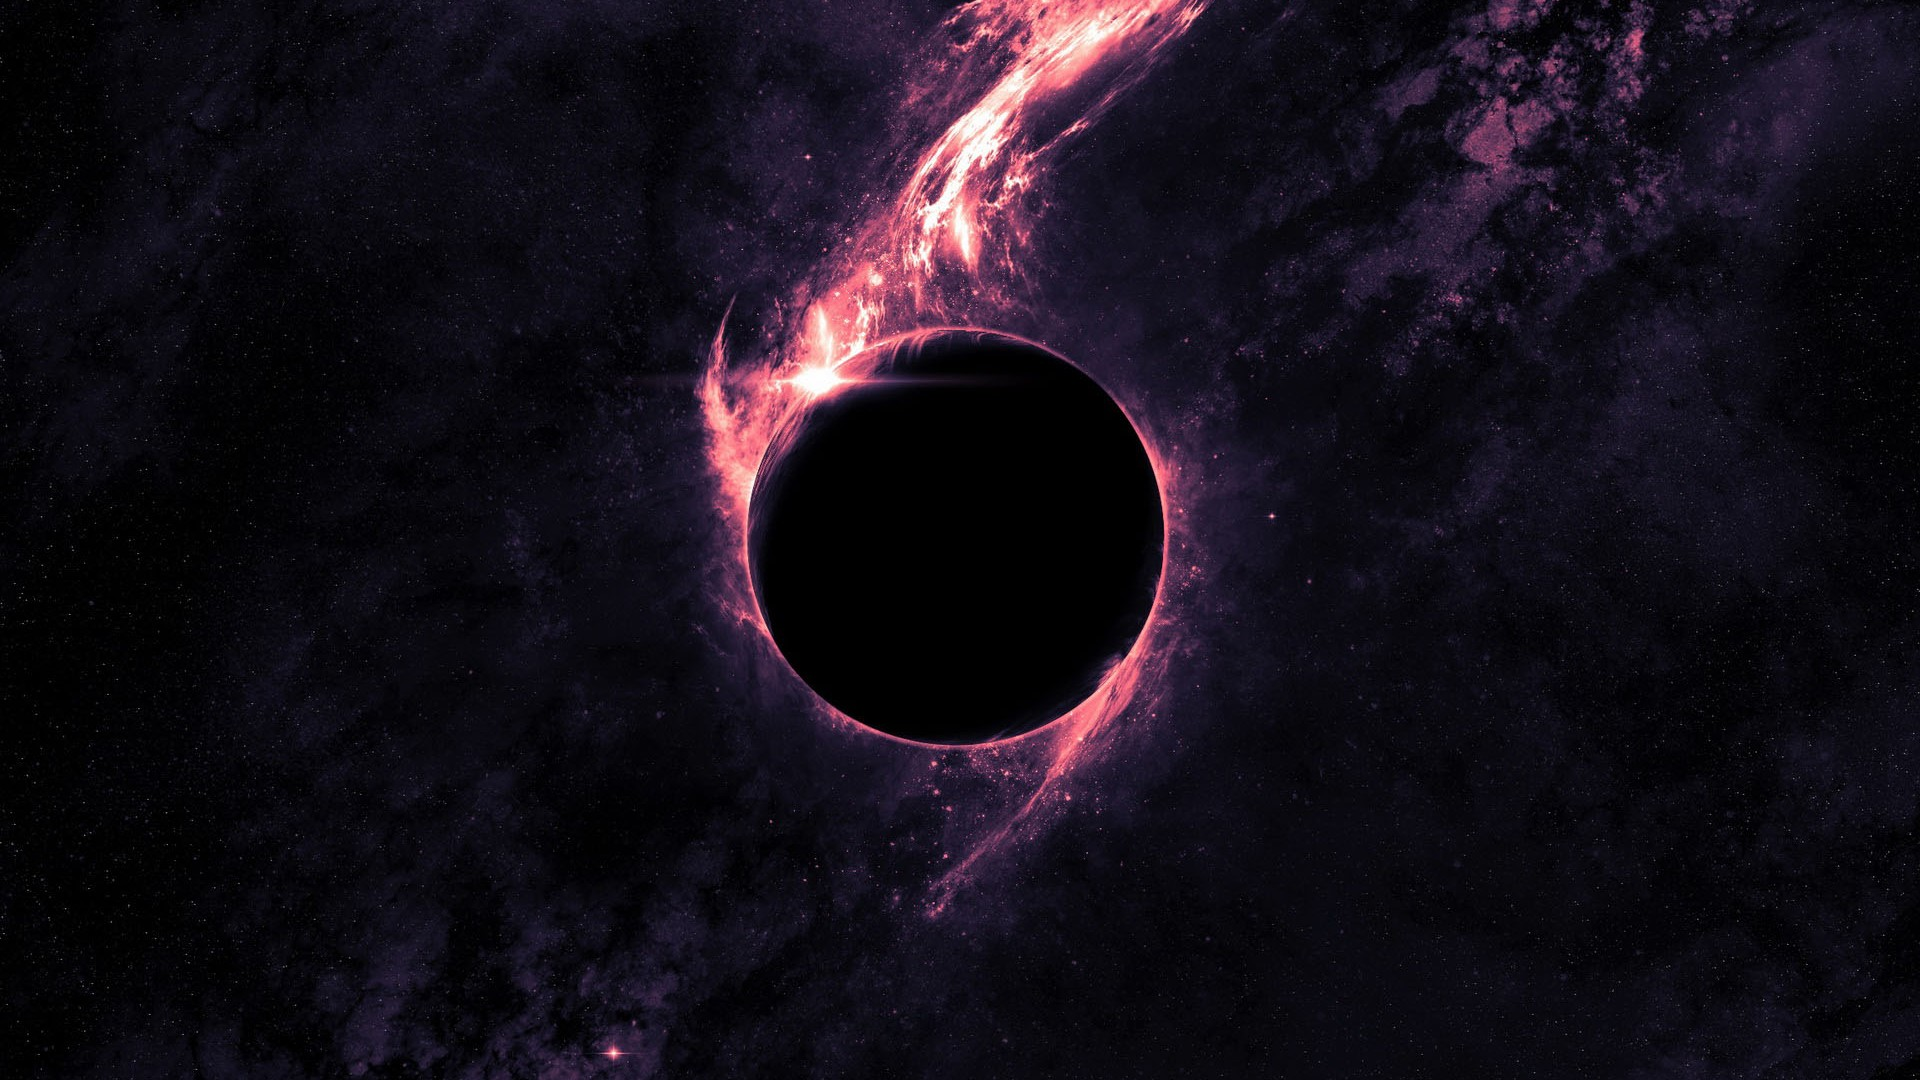 Black Hole Photos and Wallpapers Earth Blog 1920x1080